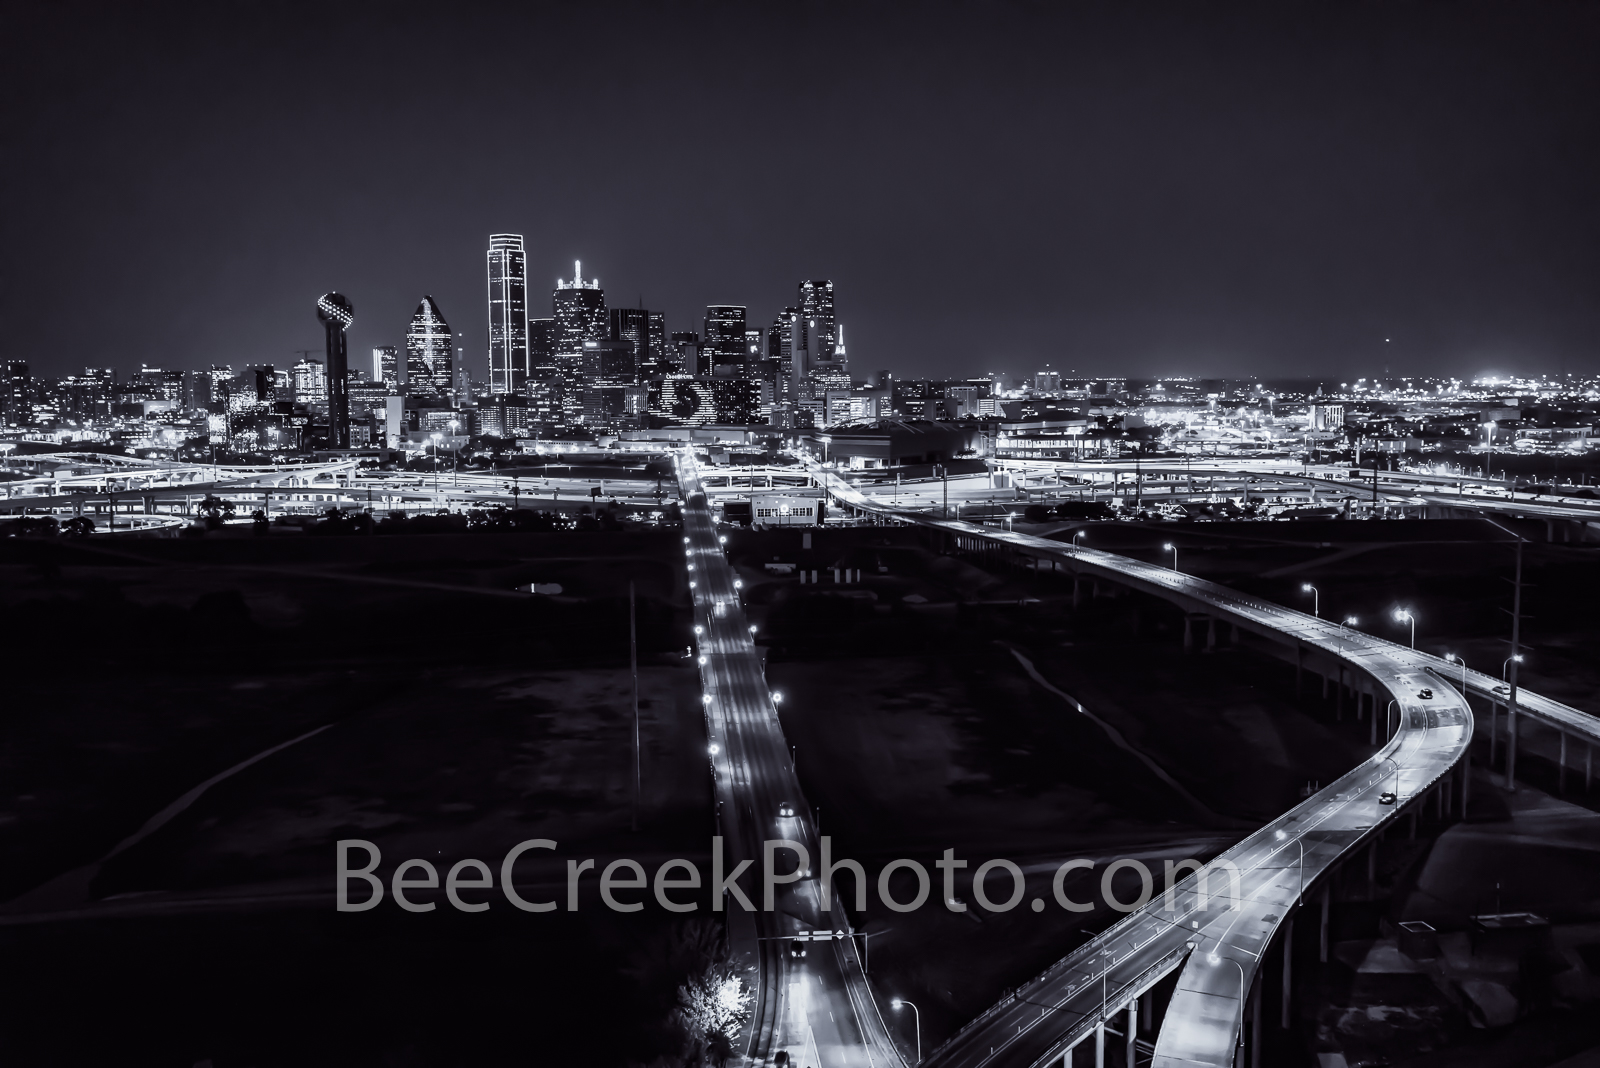 Dallas, skyline, black and white, b w, downtown, buildings, high rise, skyscrapers, Texas, high tech, banking, metro plex, , photo